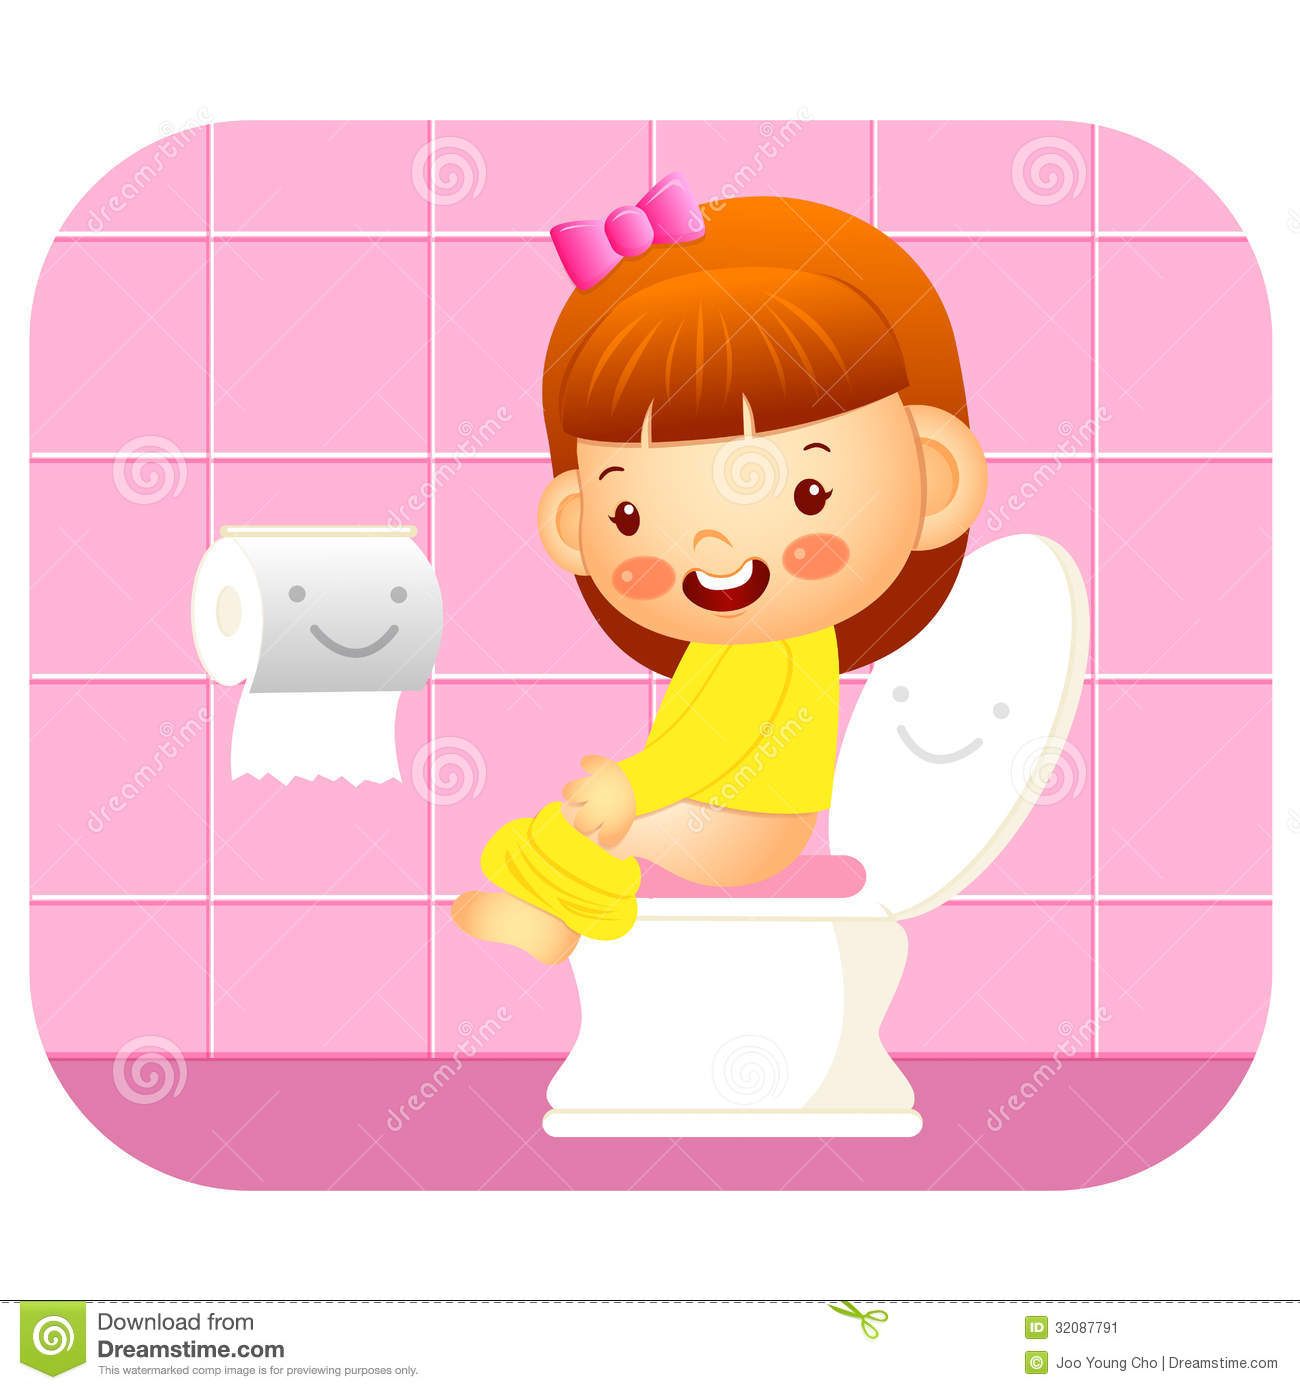 Stock Image I go to the bathroom Education and life Character Design series Image 32087791